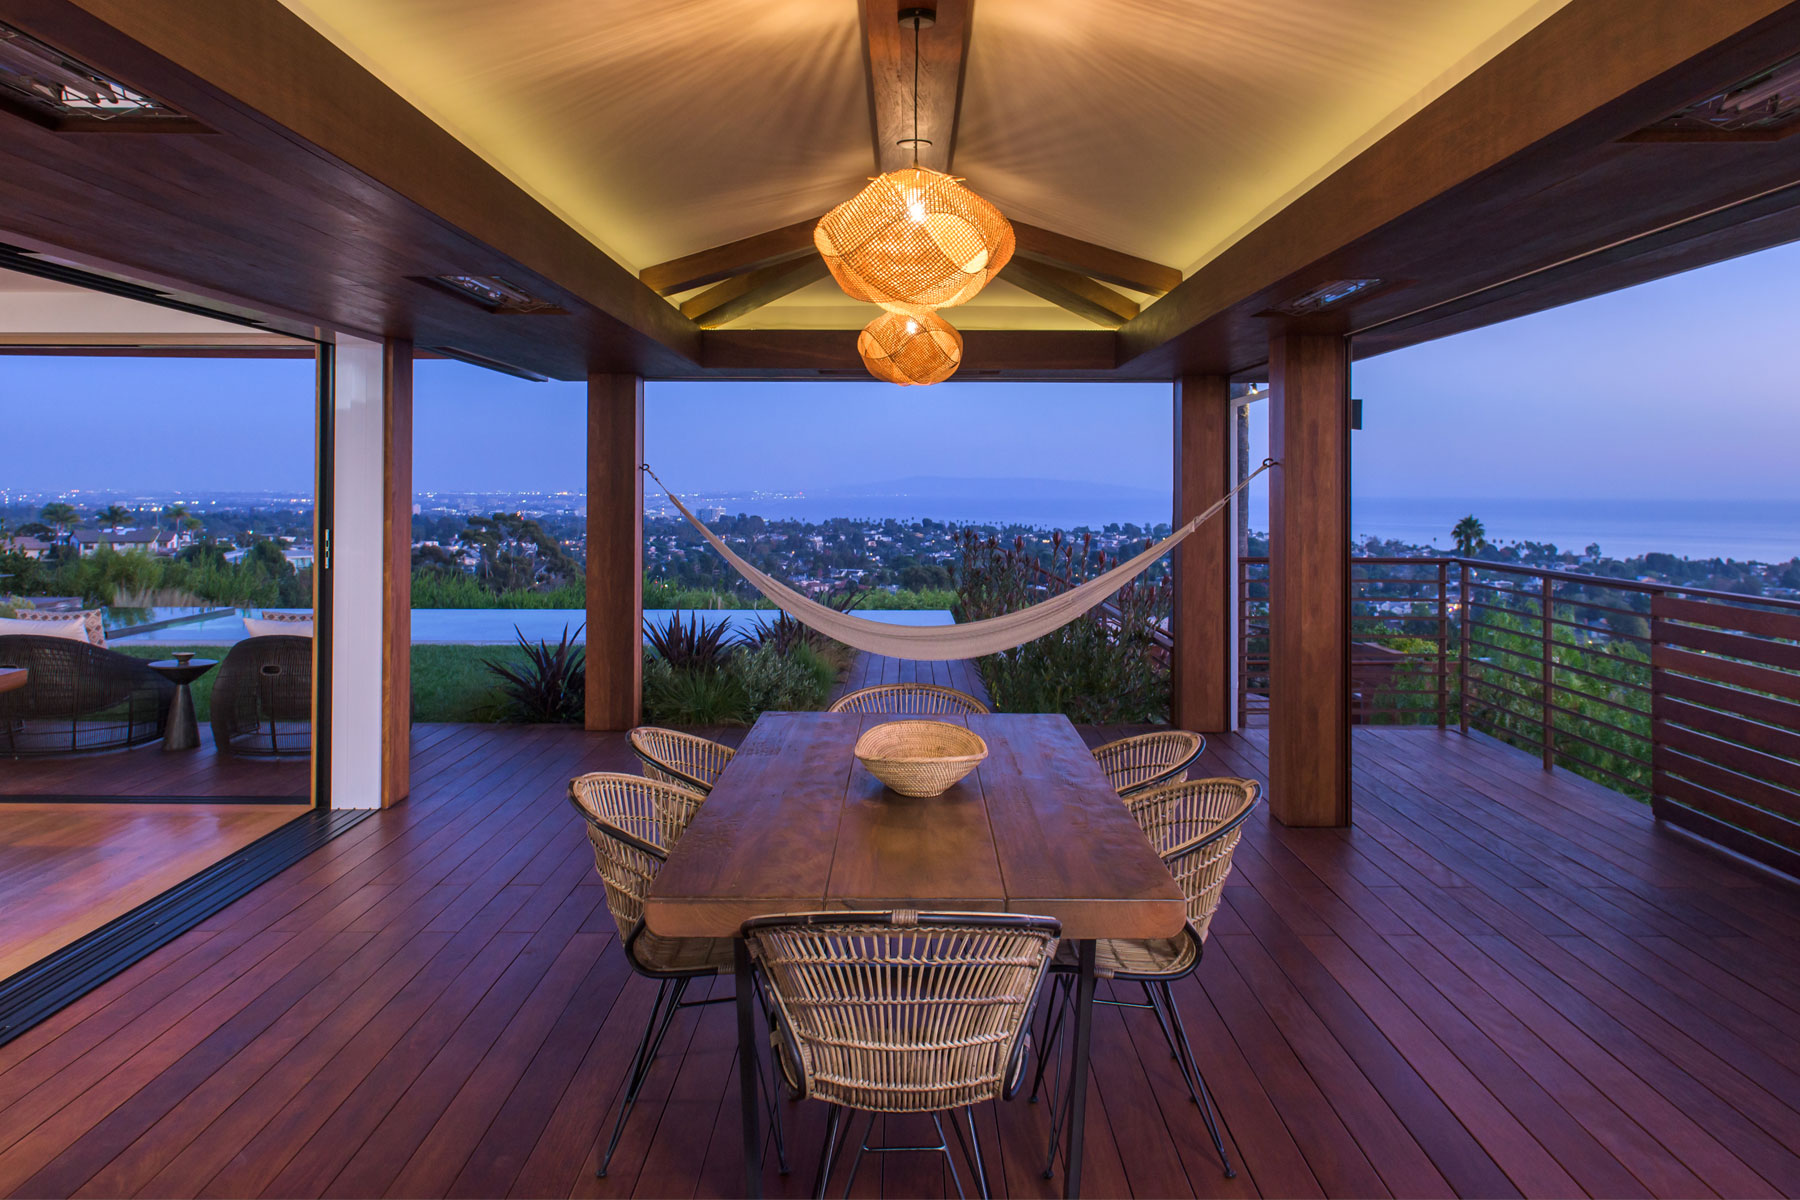 At night view of tranquil and elegant outdoor dining room wood deck and covered